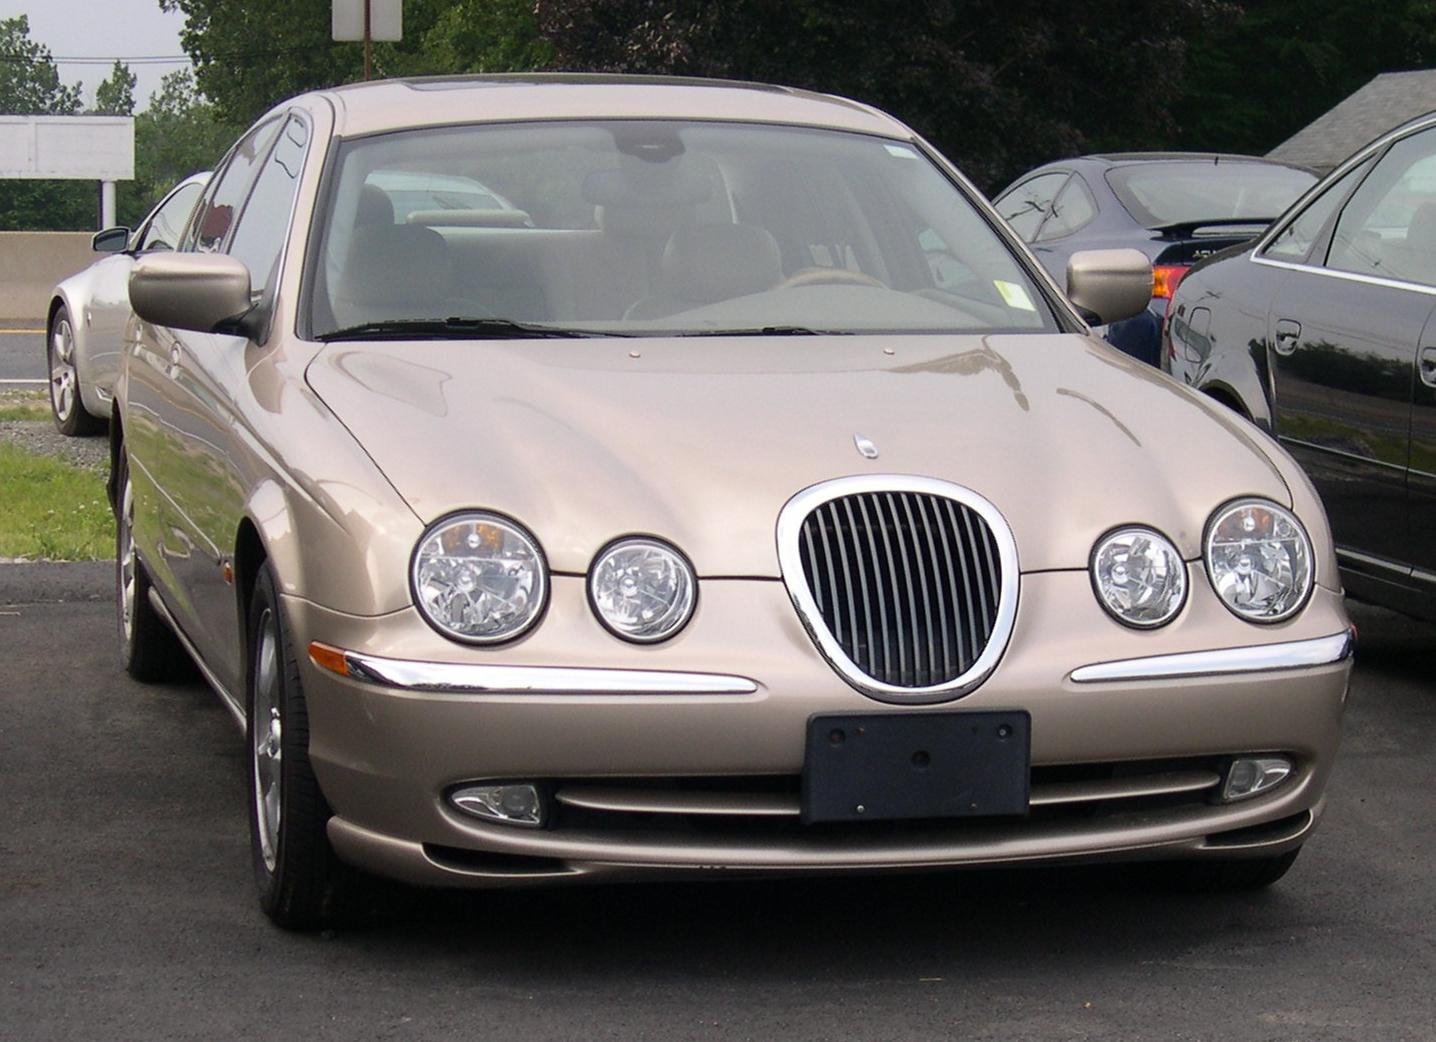 Jaguar S-type 2004: Review, Amazing Pictures and Images – Look at